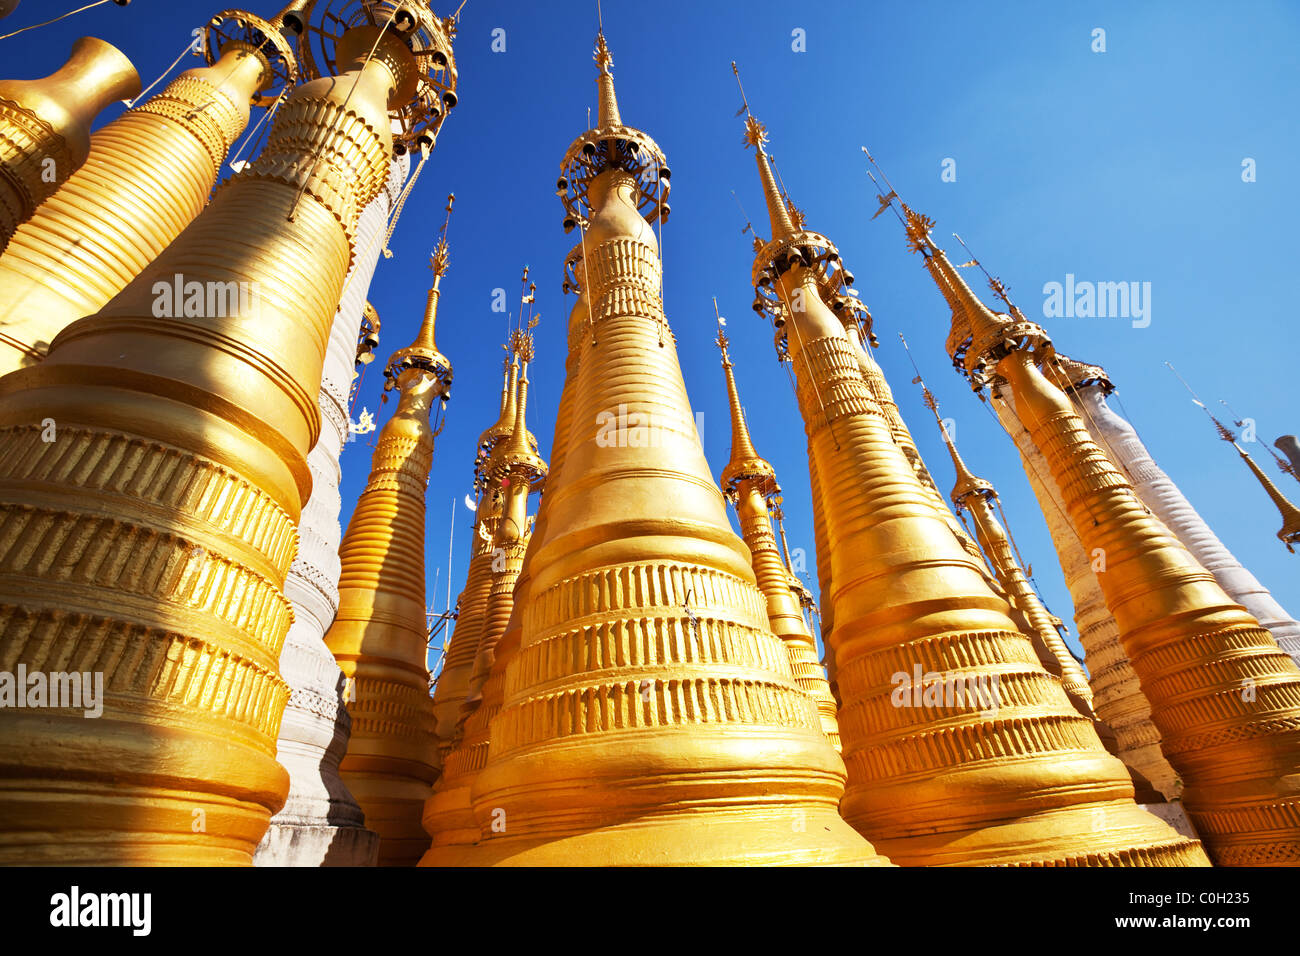 Golden stupas, Shwe Inn Thein Paya, Inthein, Inle Lake, Myanmar - Stock Image